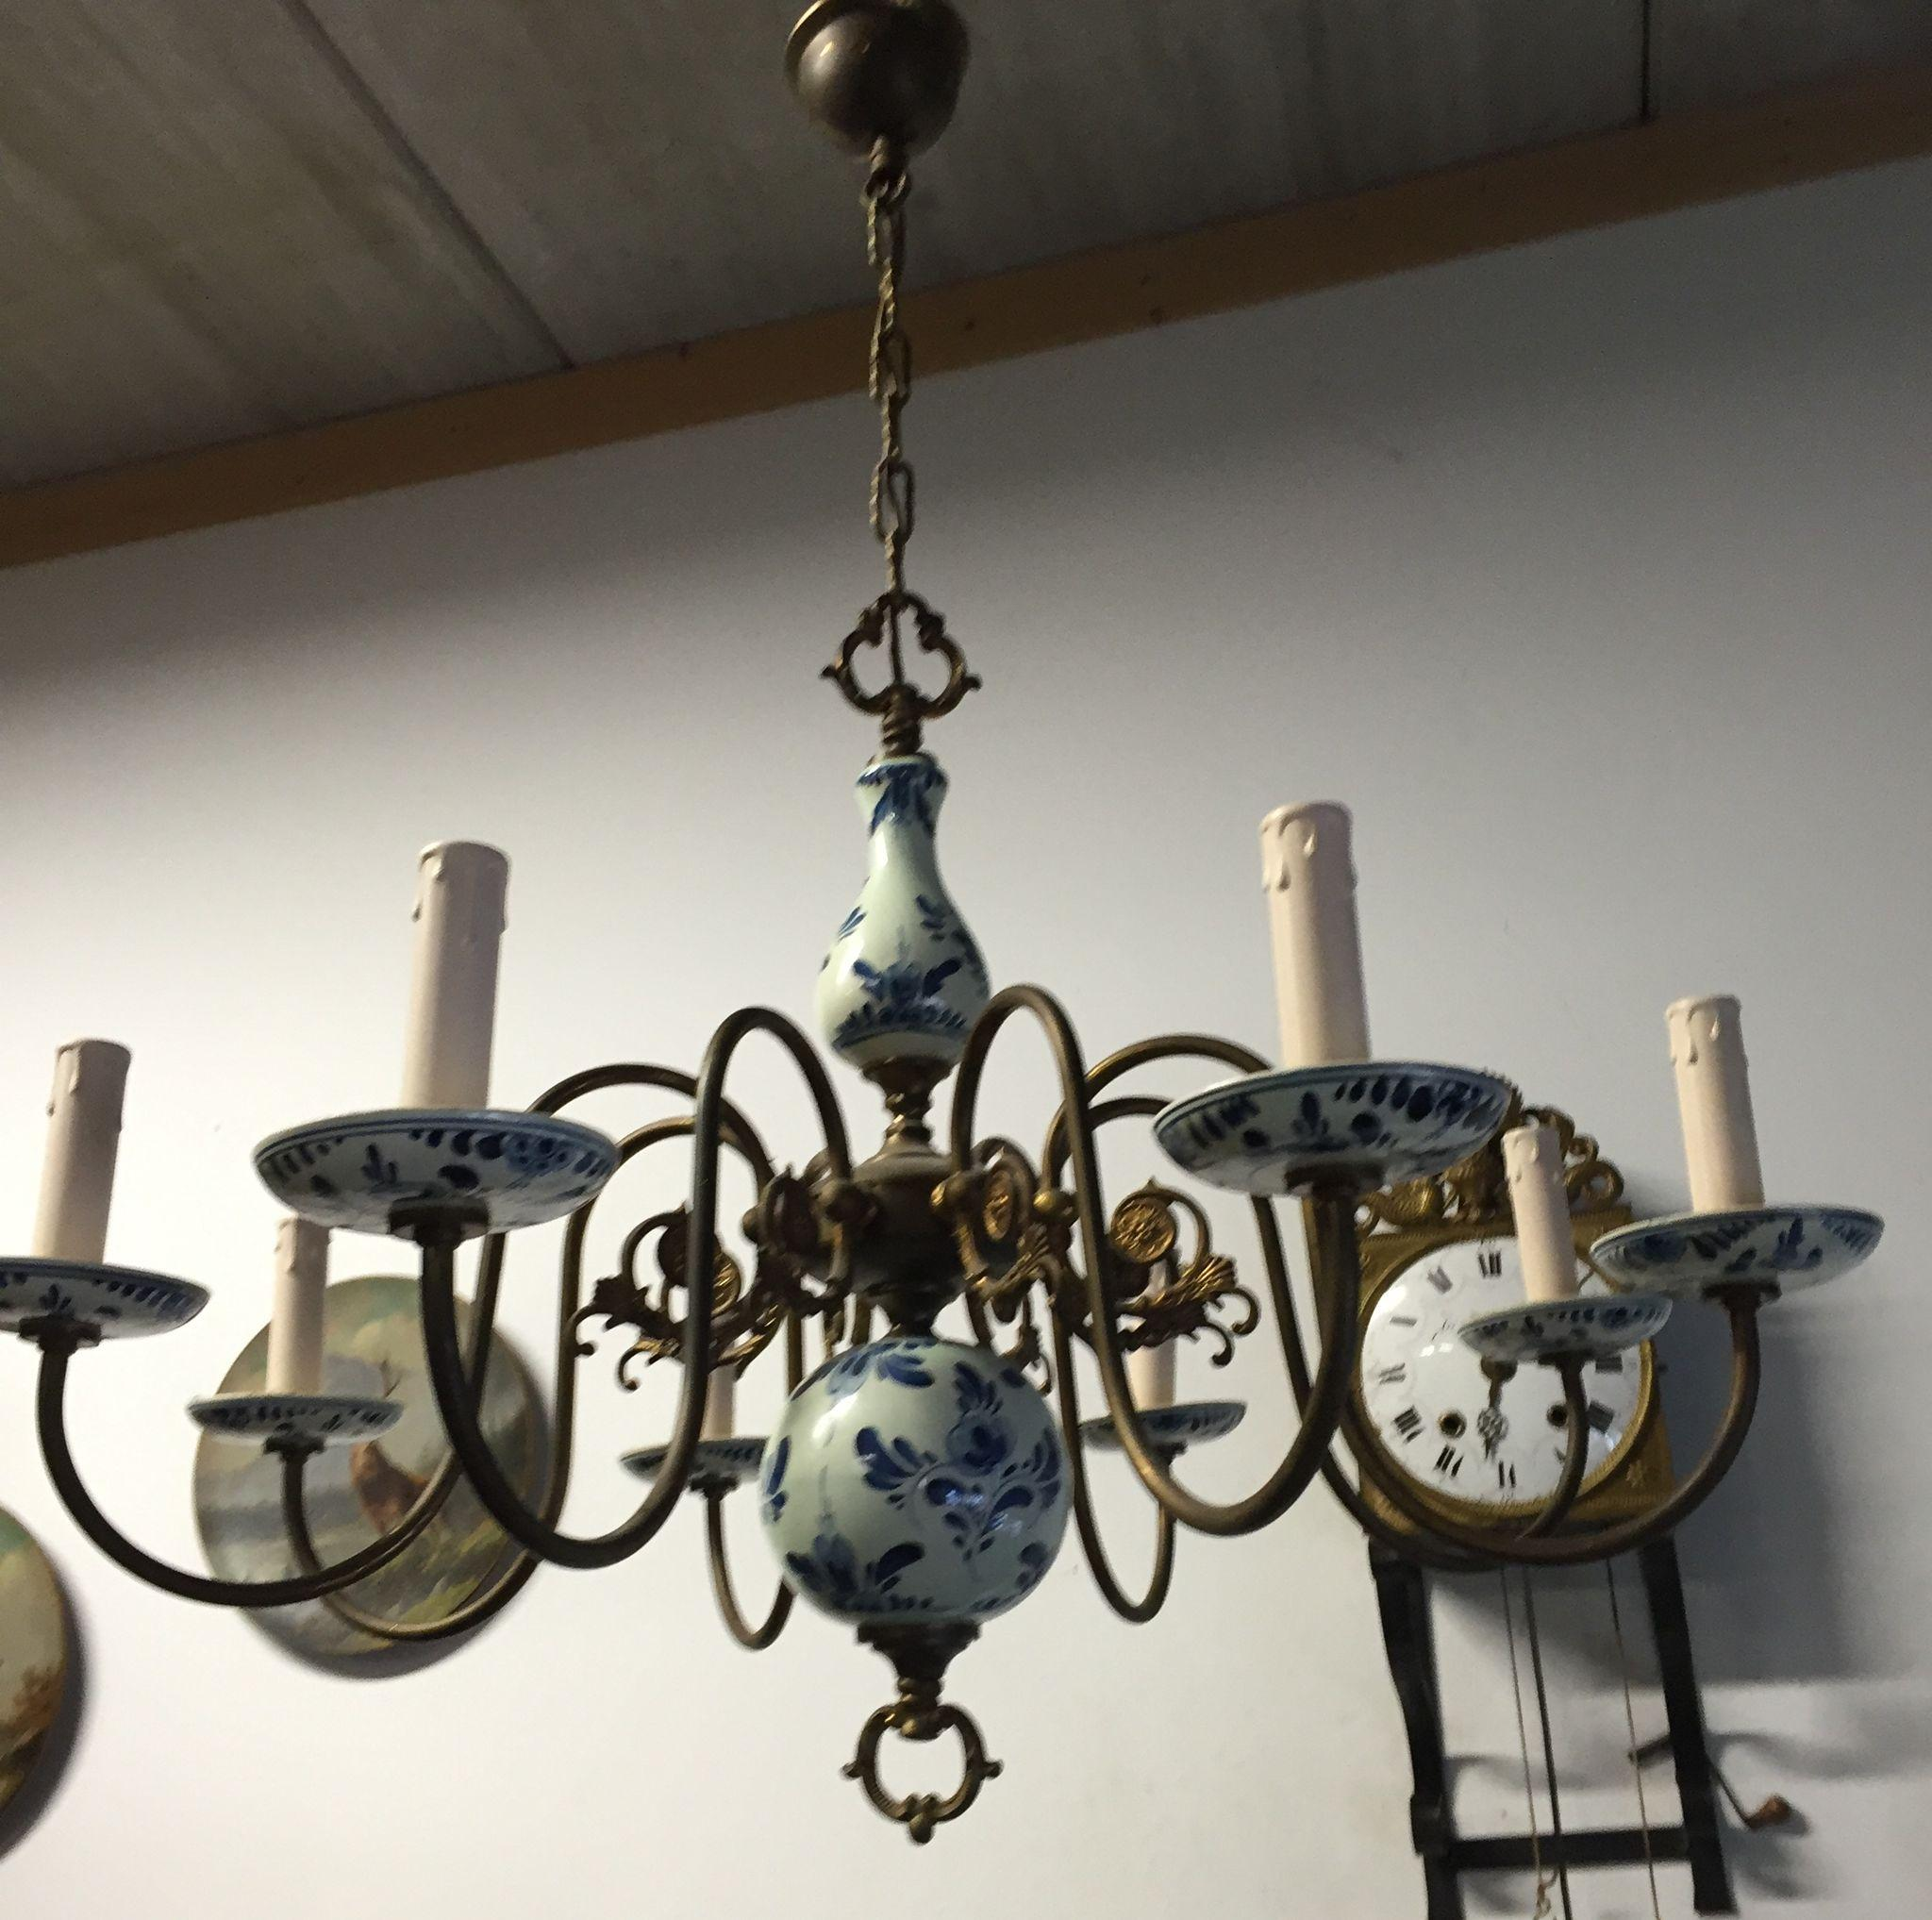 Blue and white chandelier beautiful color chandelier lighting ideas awesome reserved for jeanne i delft chandelier blue white pewter vintage with blue and white chandelier arubaitofo Images